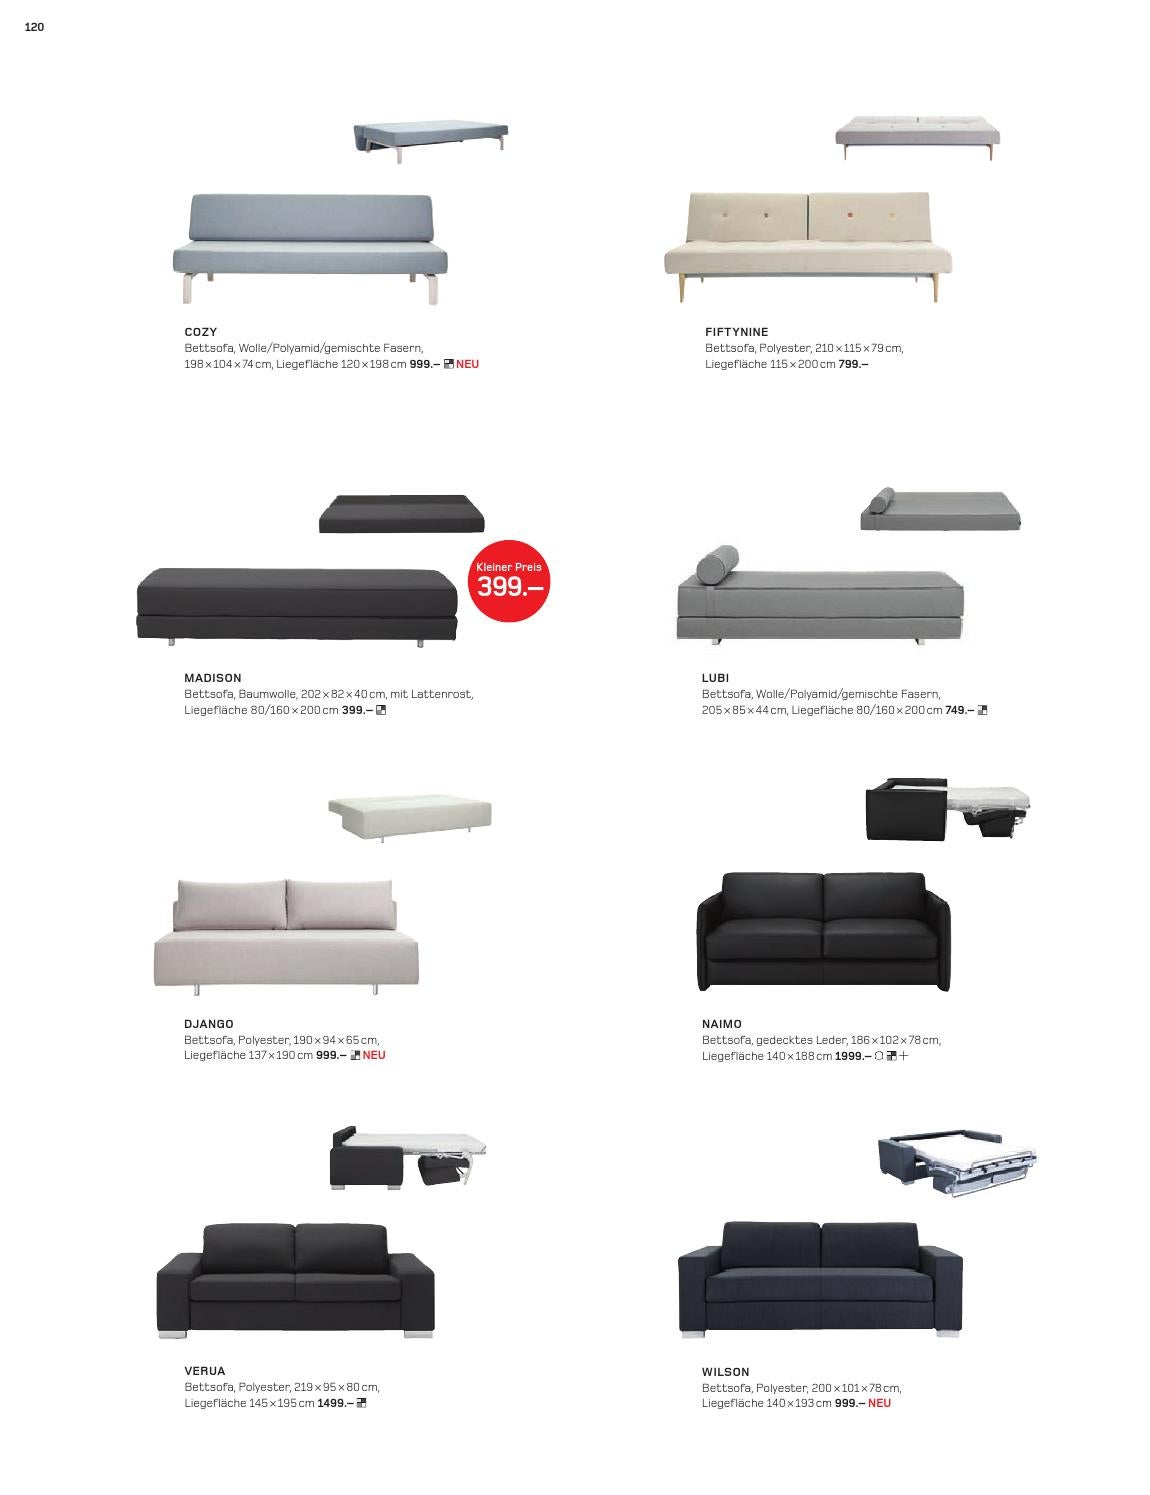 Interio Bettsofa Wilson Interio Katalog 2013 14 By Interio Interio Issuu